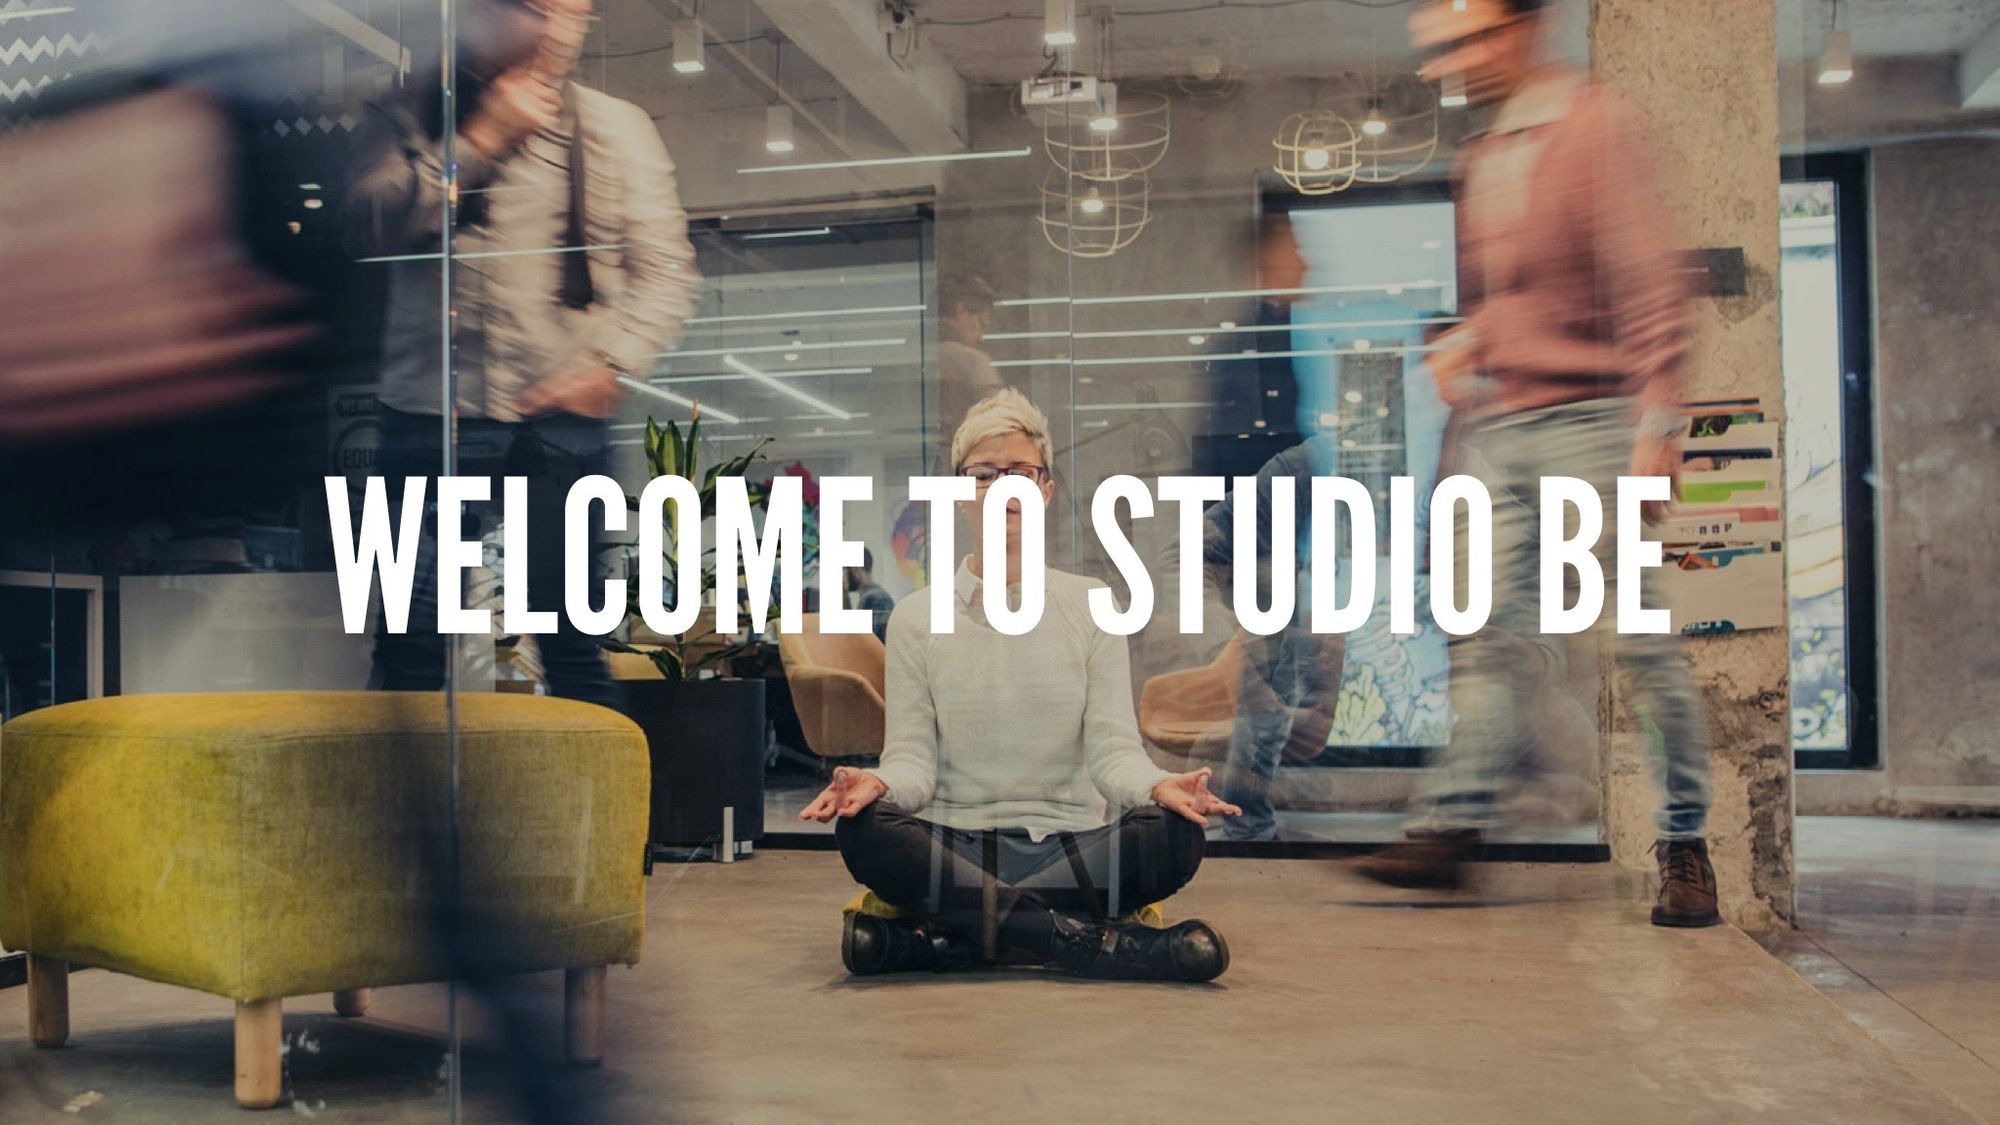 Welcome to studio BE